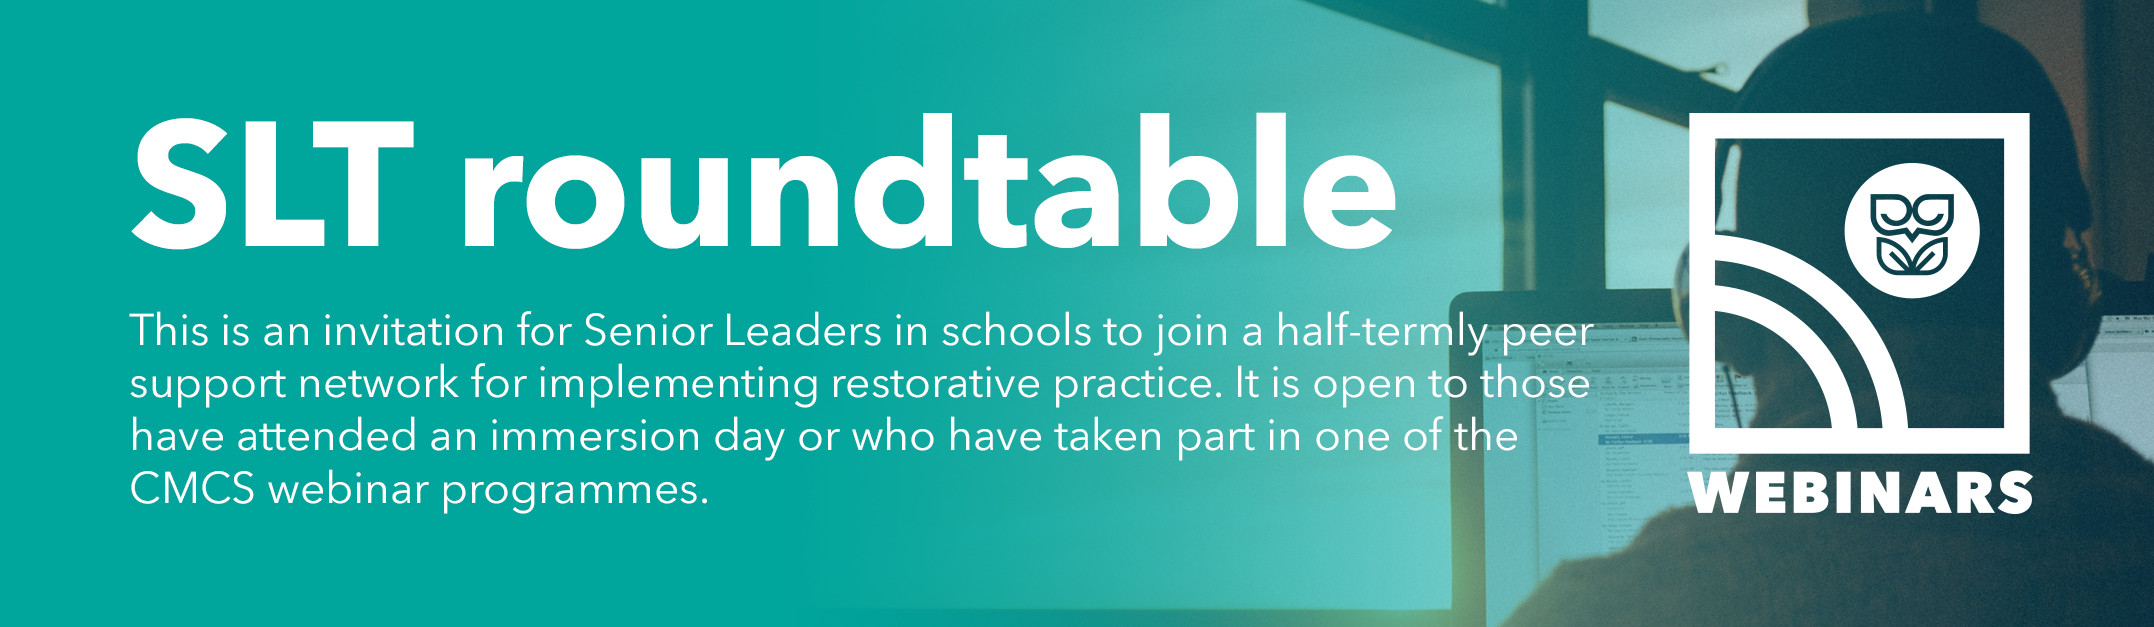 Relational and restorative practice - SLT roundtable